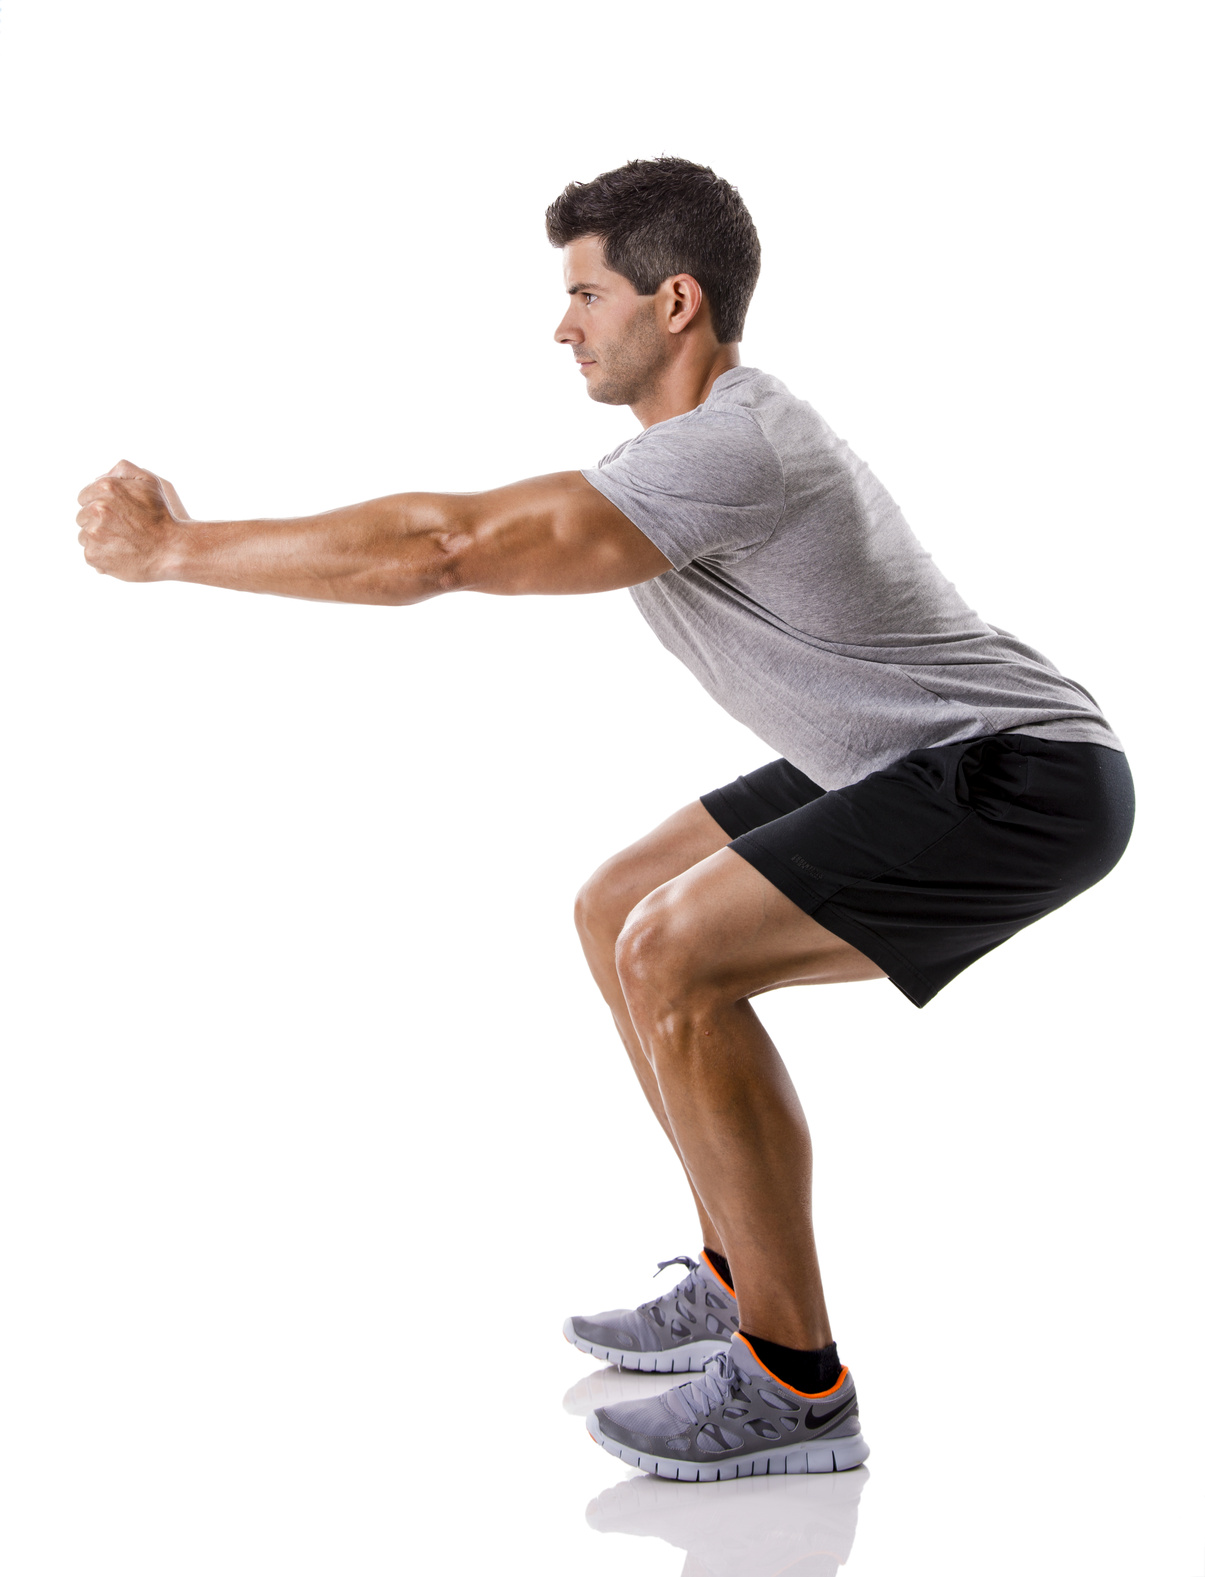 Functional exercises: What are they and why you should do